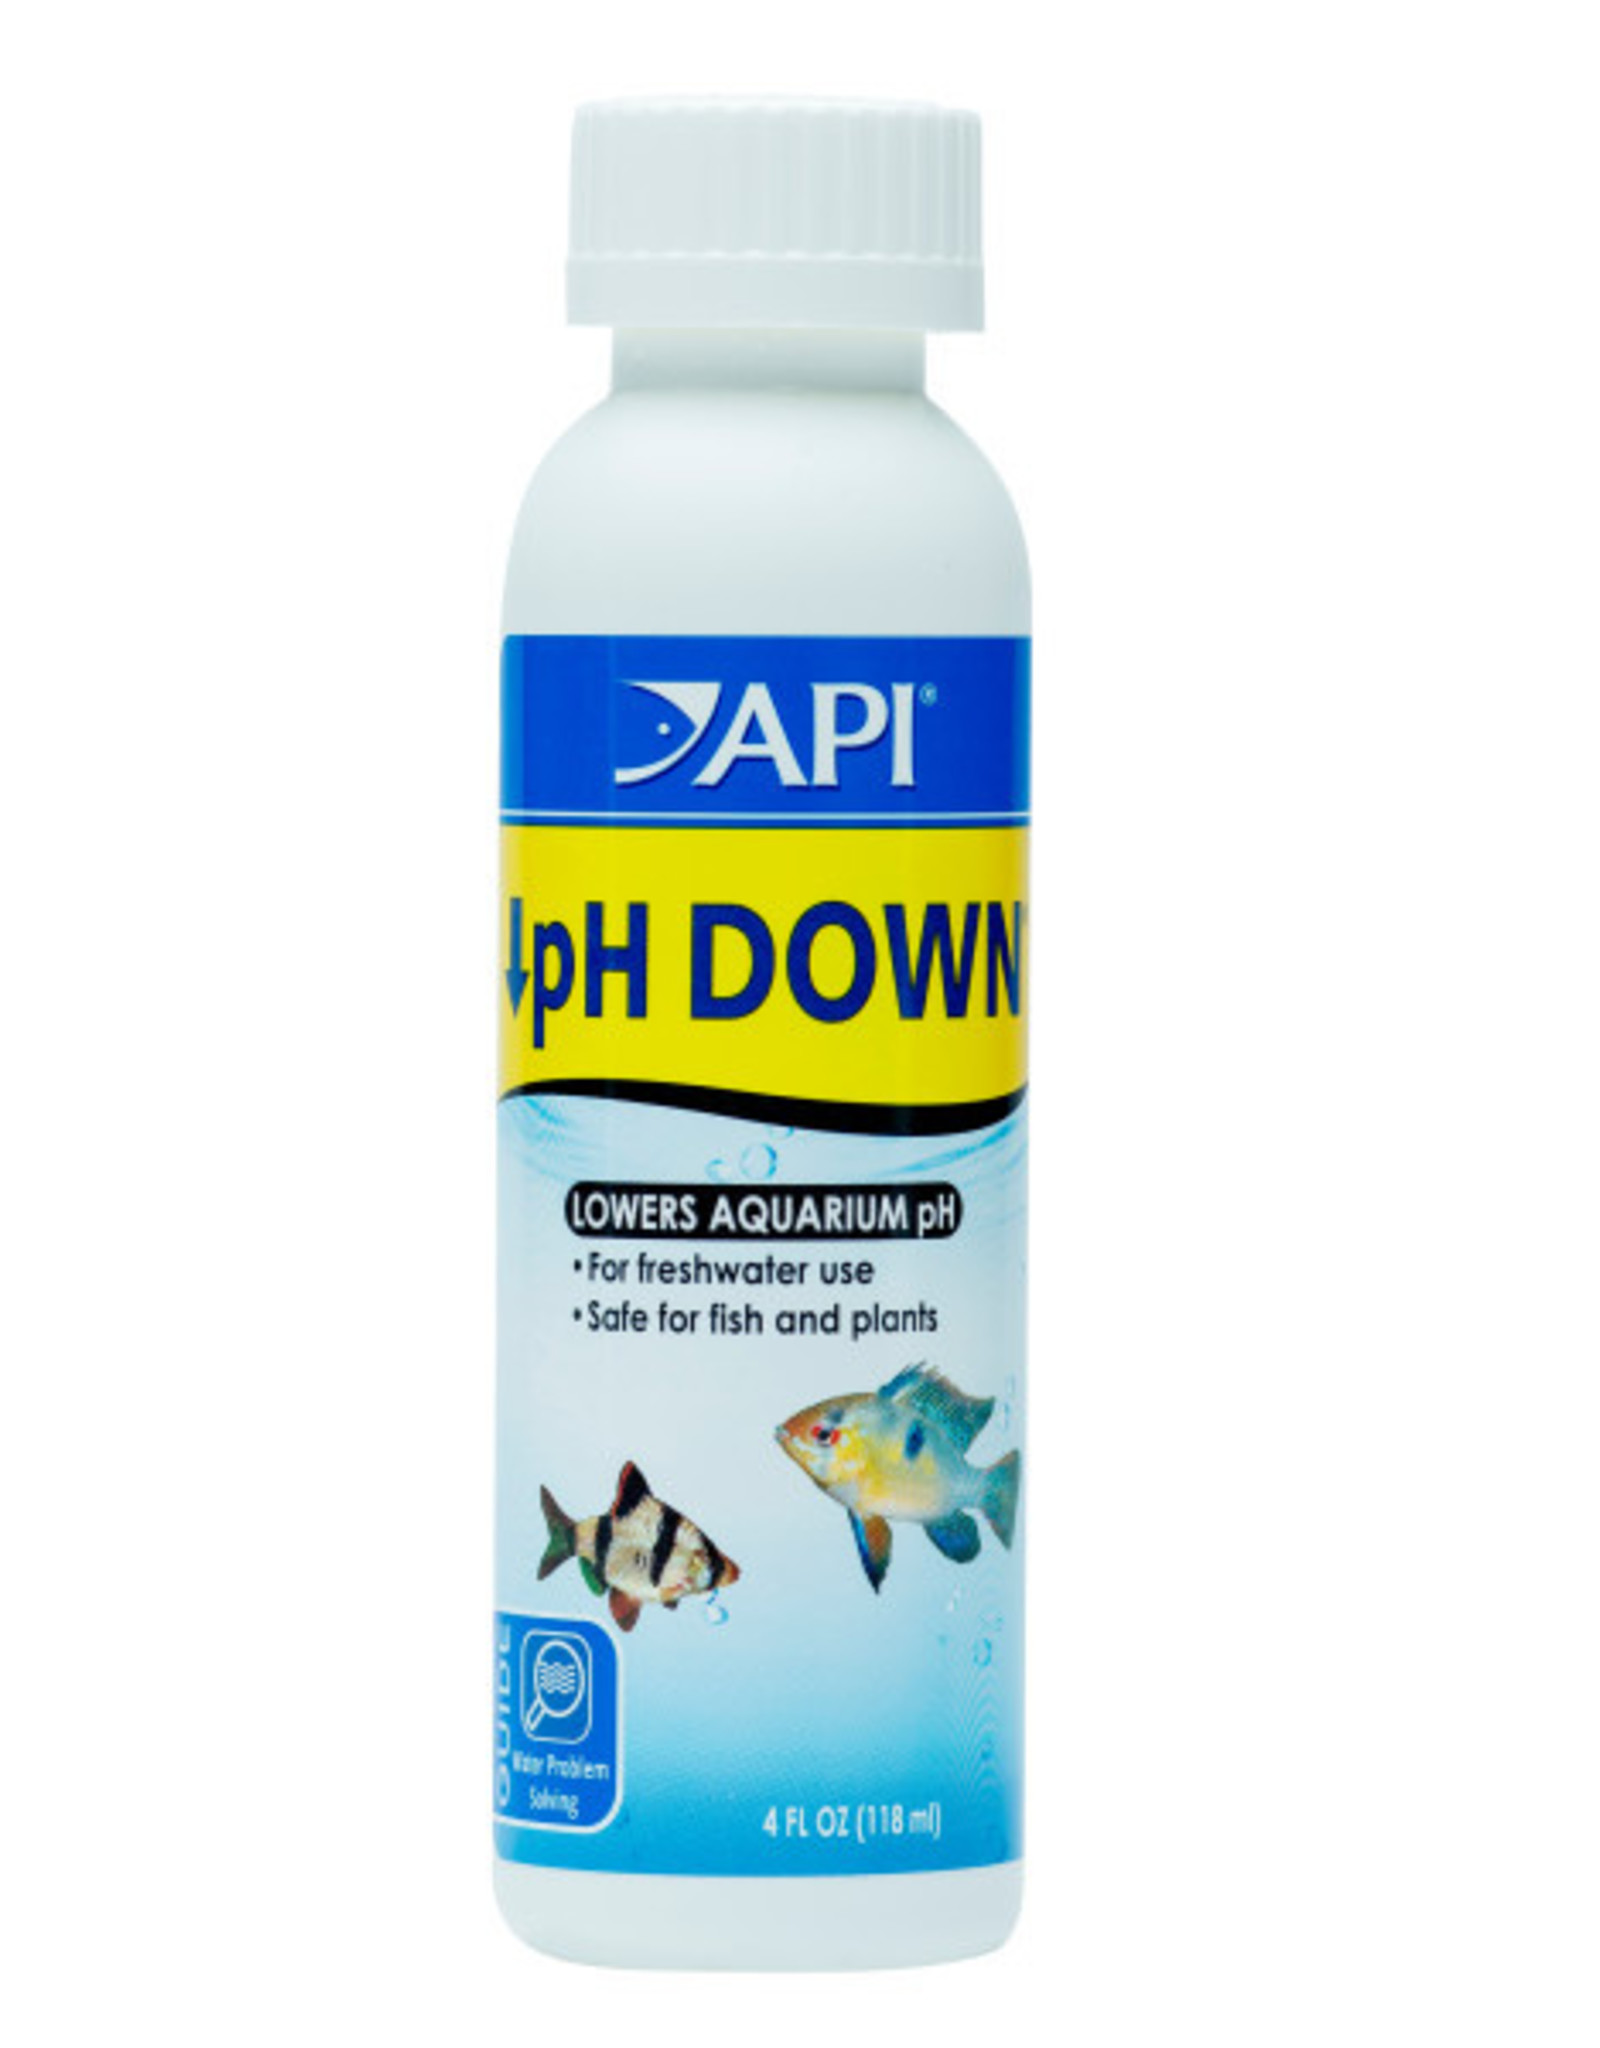 MARS FISHCARE NORTH AMERICA IN API PH DOWN 4OZ